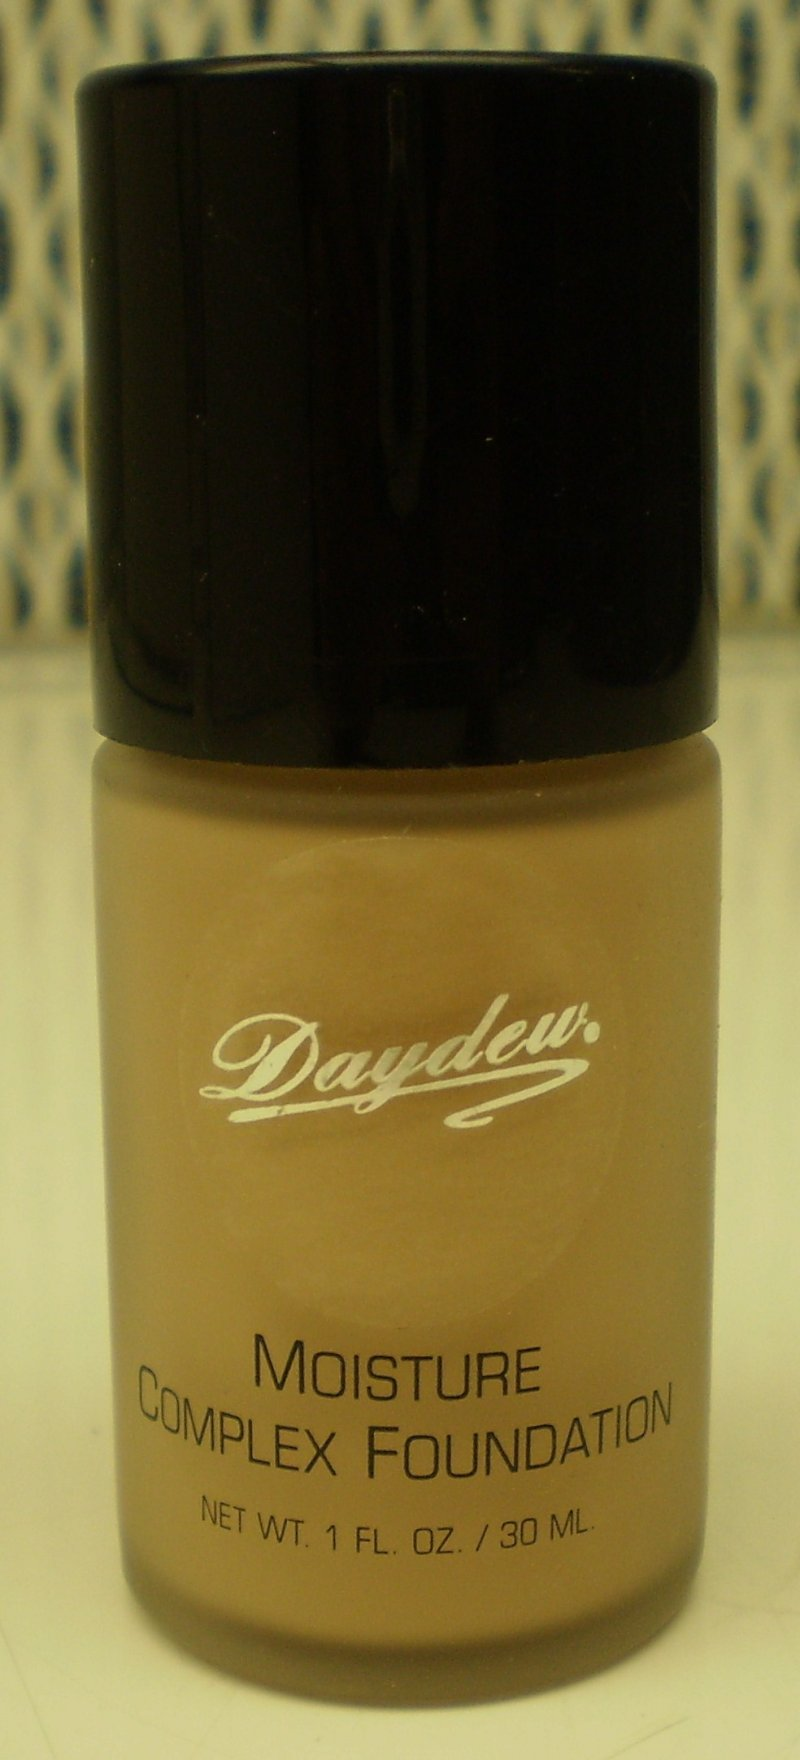 Daydew Custom Blend Moisture Complex Foundation Makeup Creme Beige 1 oz